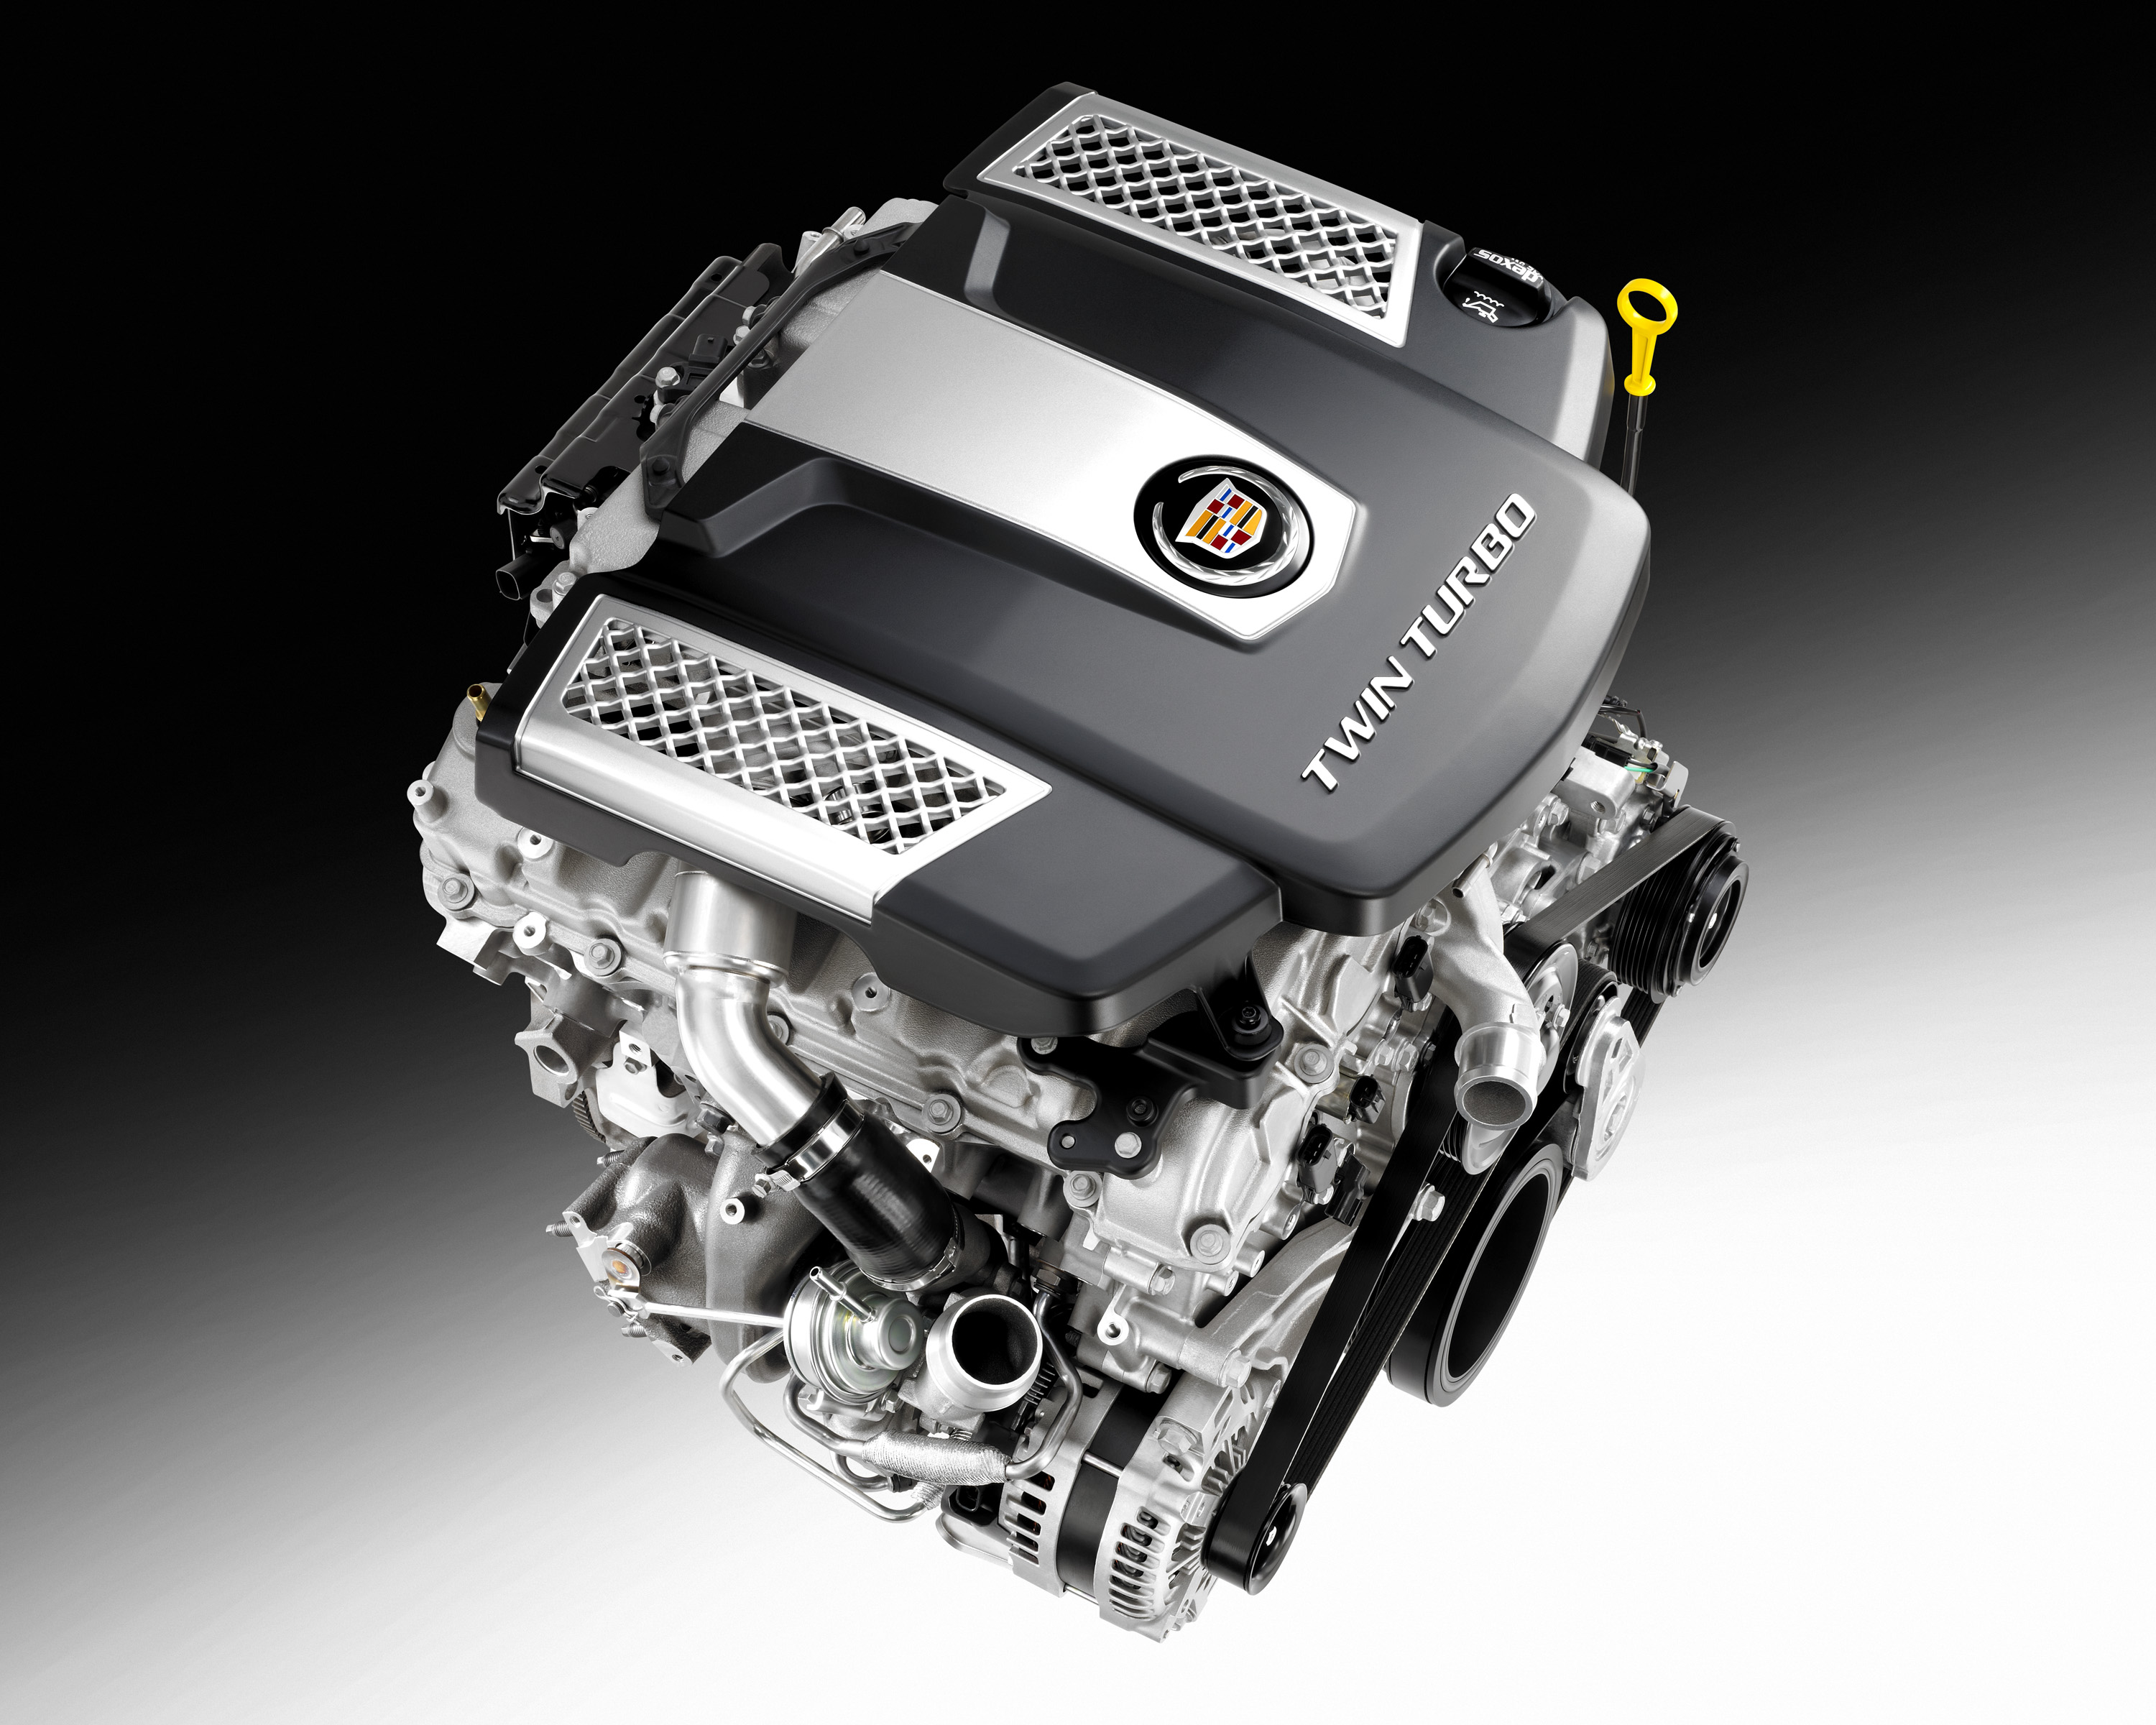 Cadillac Twin Turbo Debuts In All New 2014 Cts Sedan General Engine Cooling Diagram